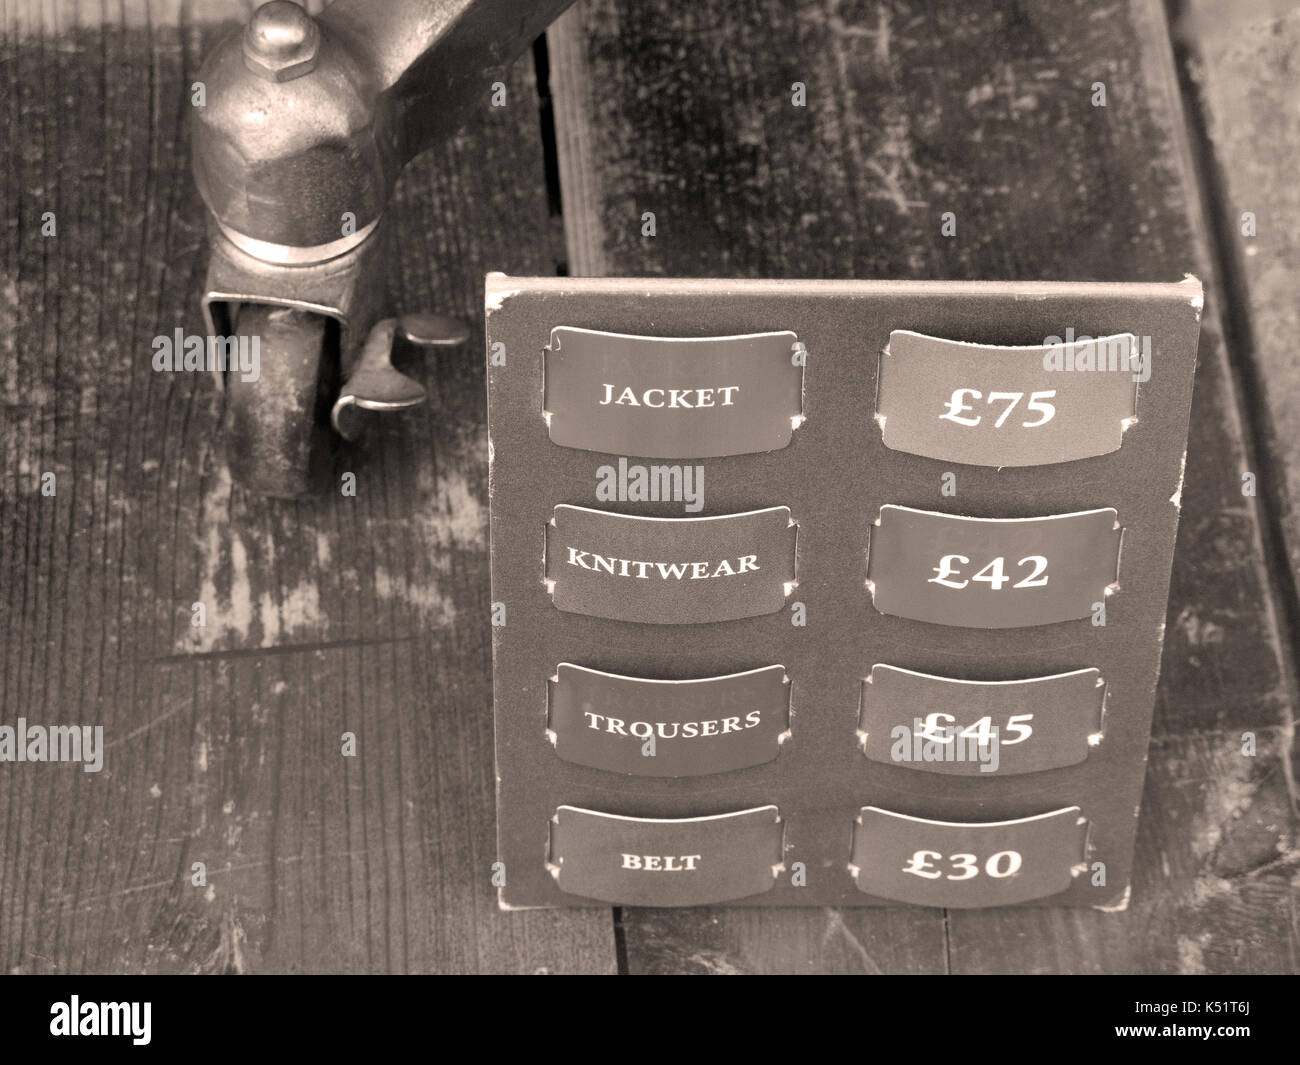 Jack Wills clothing prices in shop window, company founded by Peter Williams and Robert Shaw in 1999 - Stock Image